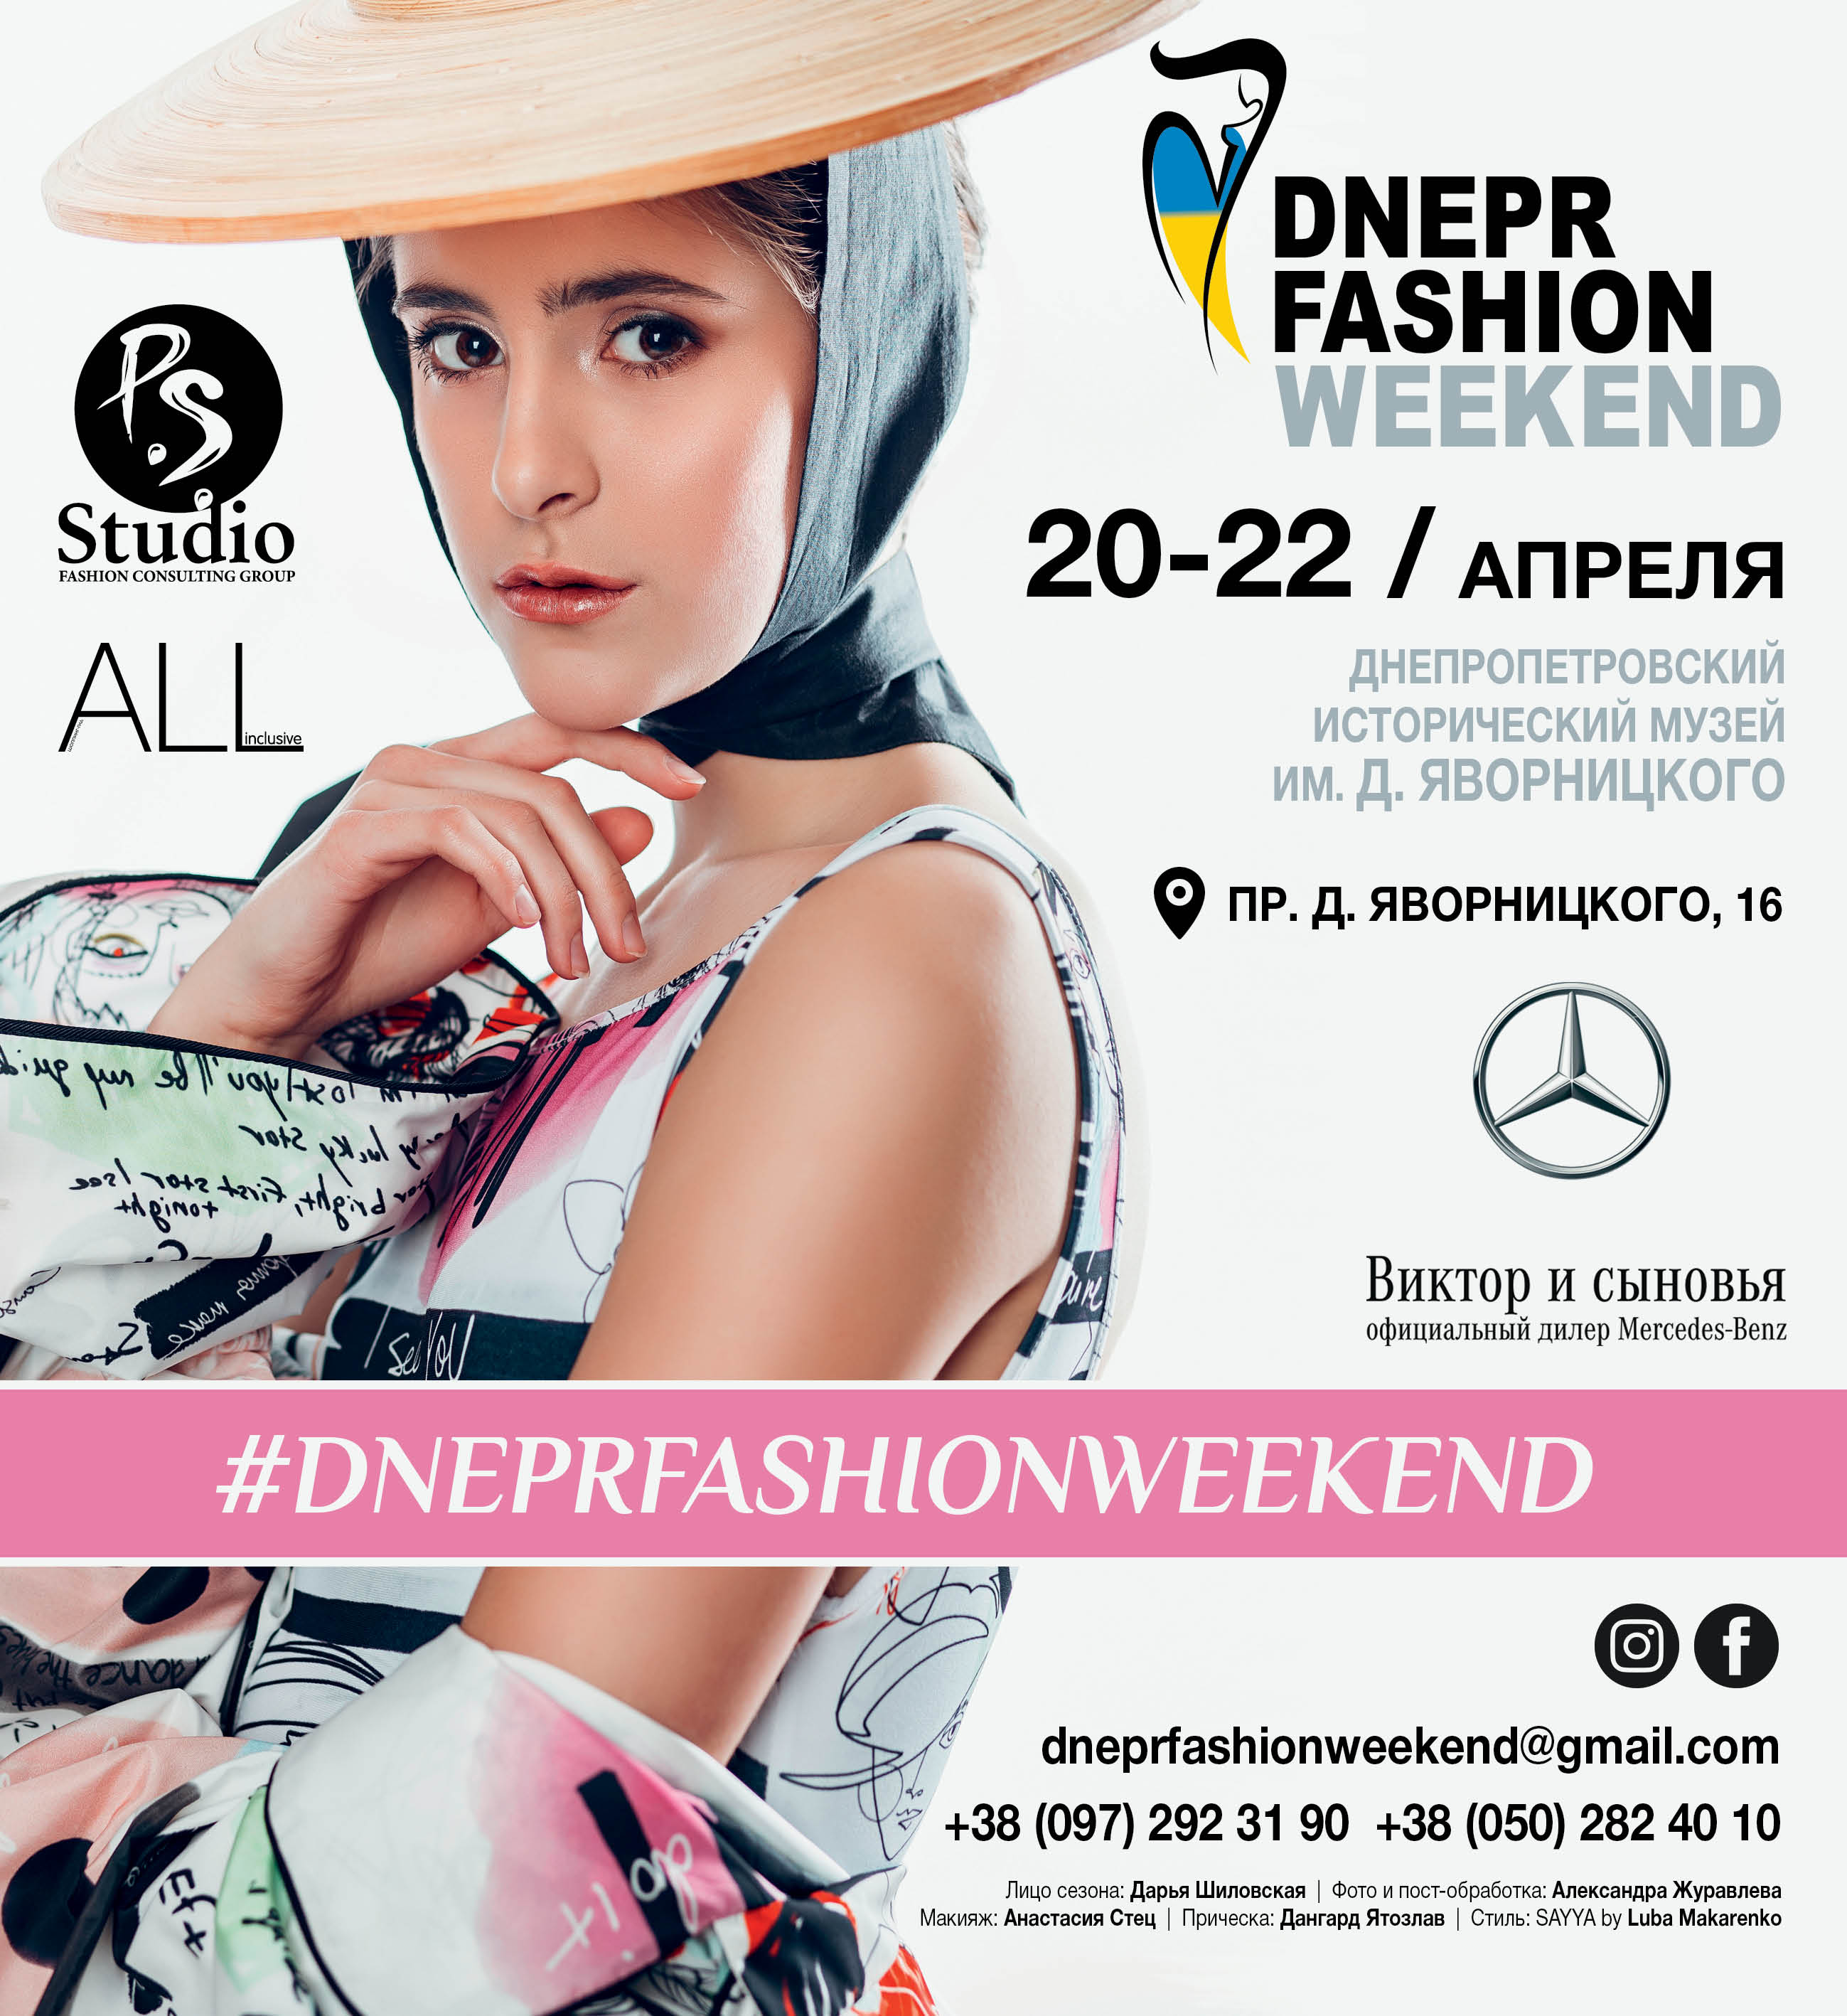 Dnepr Fashion Weekend 20 22 апреля 2 - LL by LITKOVSKAYA